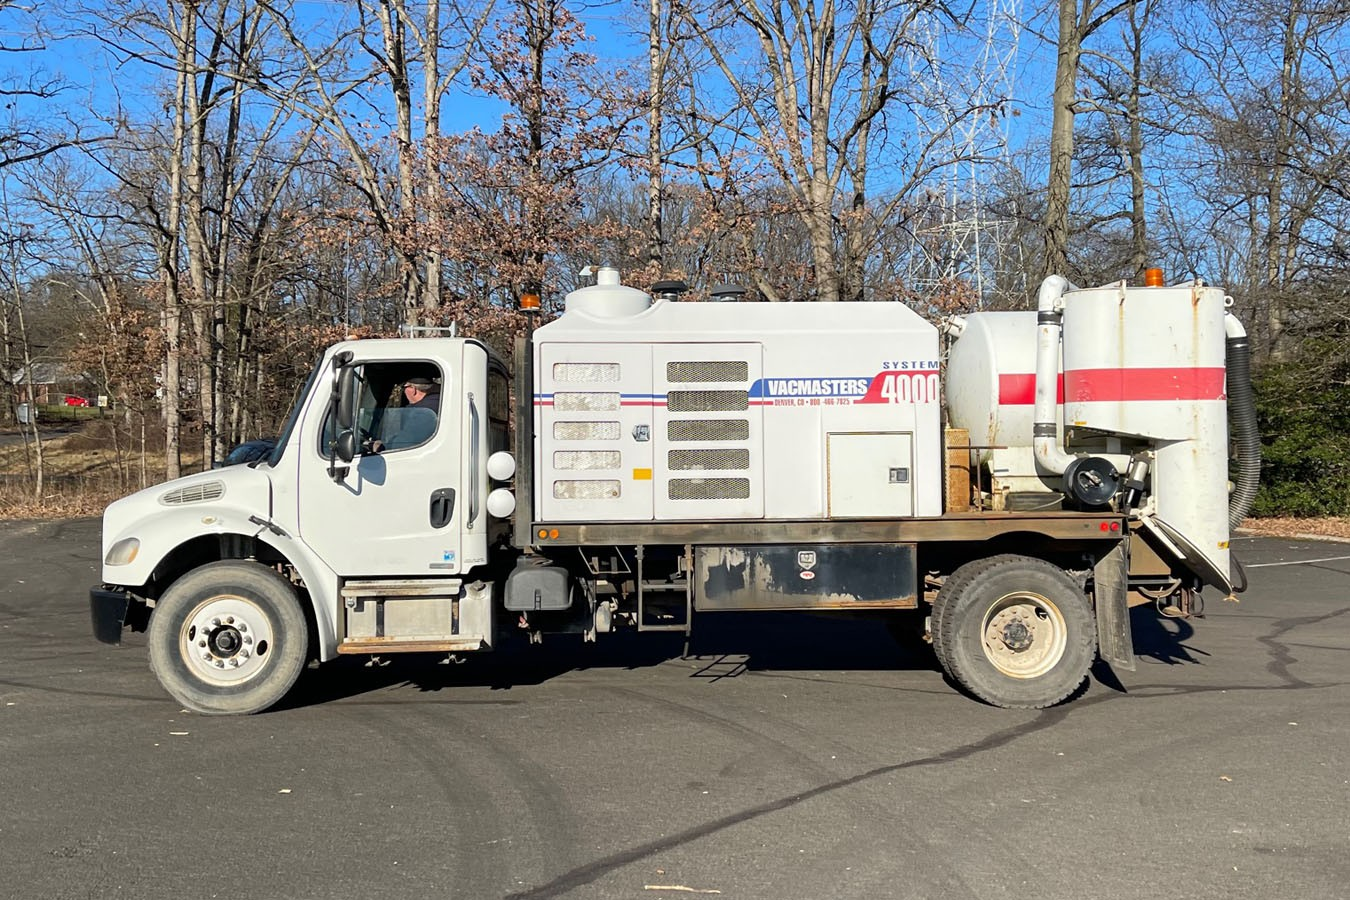 Used, 2007, Other, FREIGHTLINER M2-106 W/ VACMASTER VND-S4000: VACUUM EXCAVATOR, Other